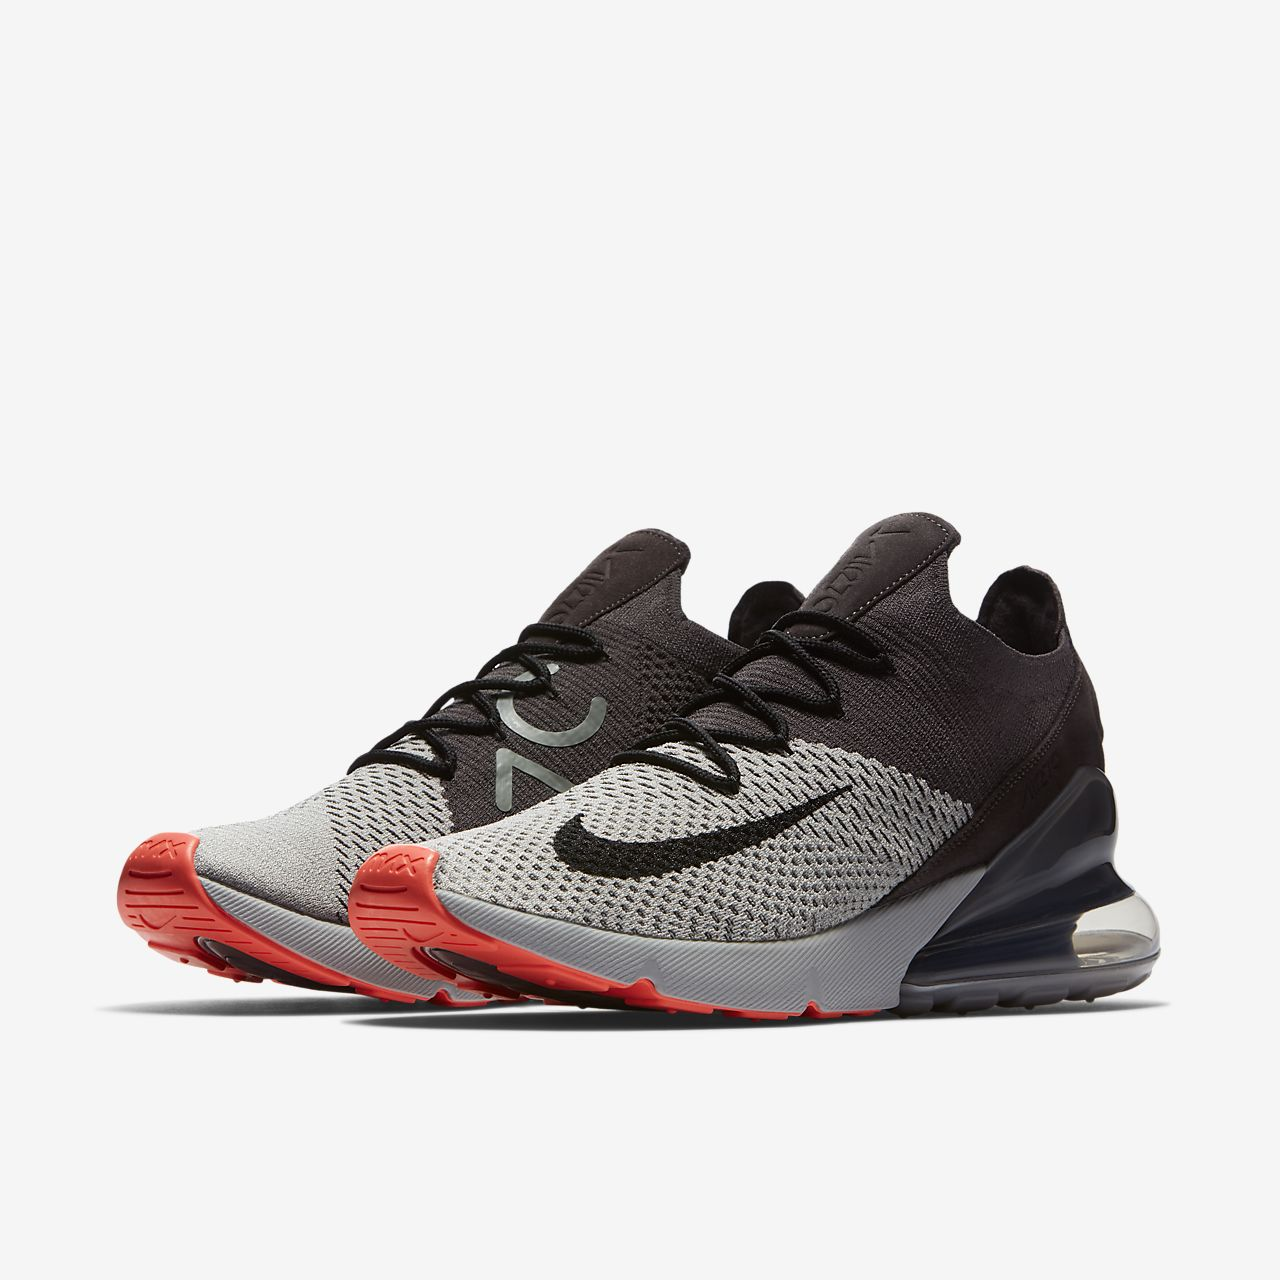 new concept b455a 8d810 ... Chaussure Nike Air Max 270 Flyknit pour Homme